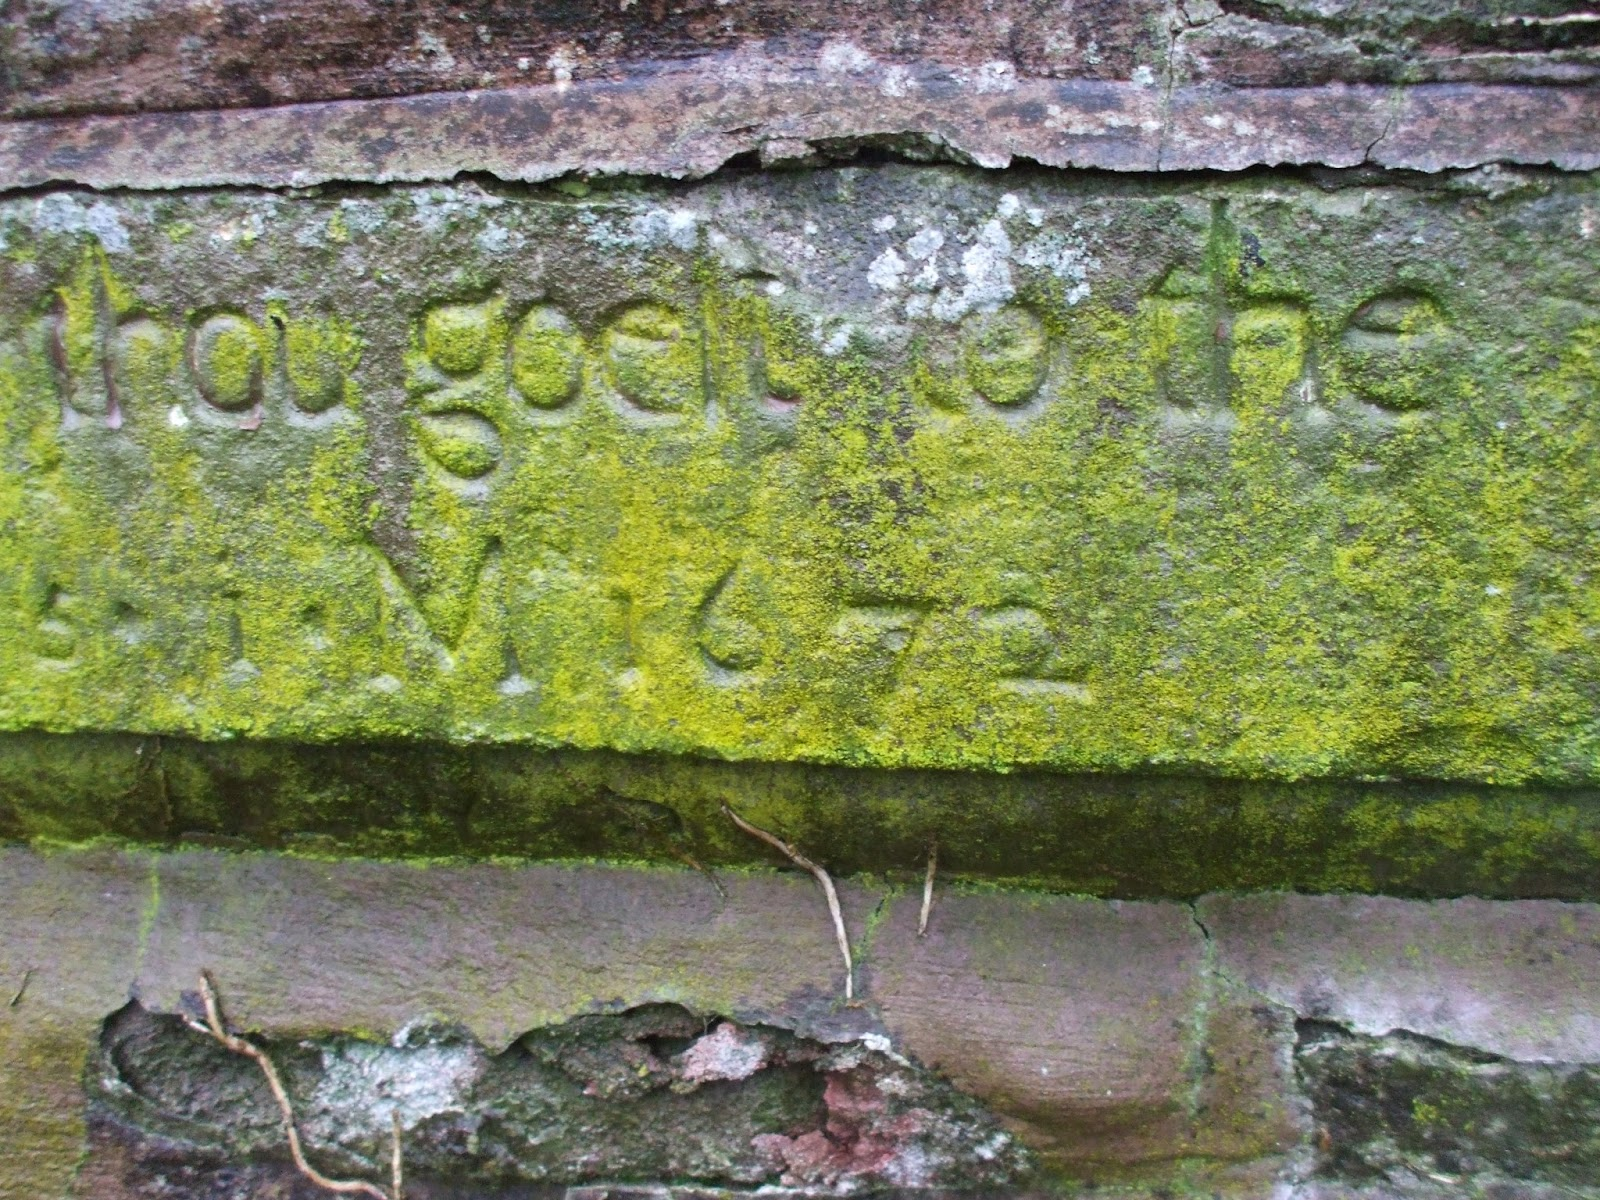 inscription clunie church 19/01/14 sea penguin